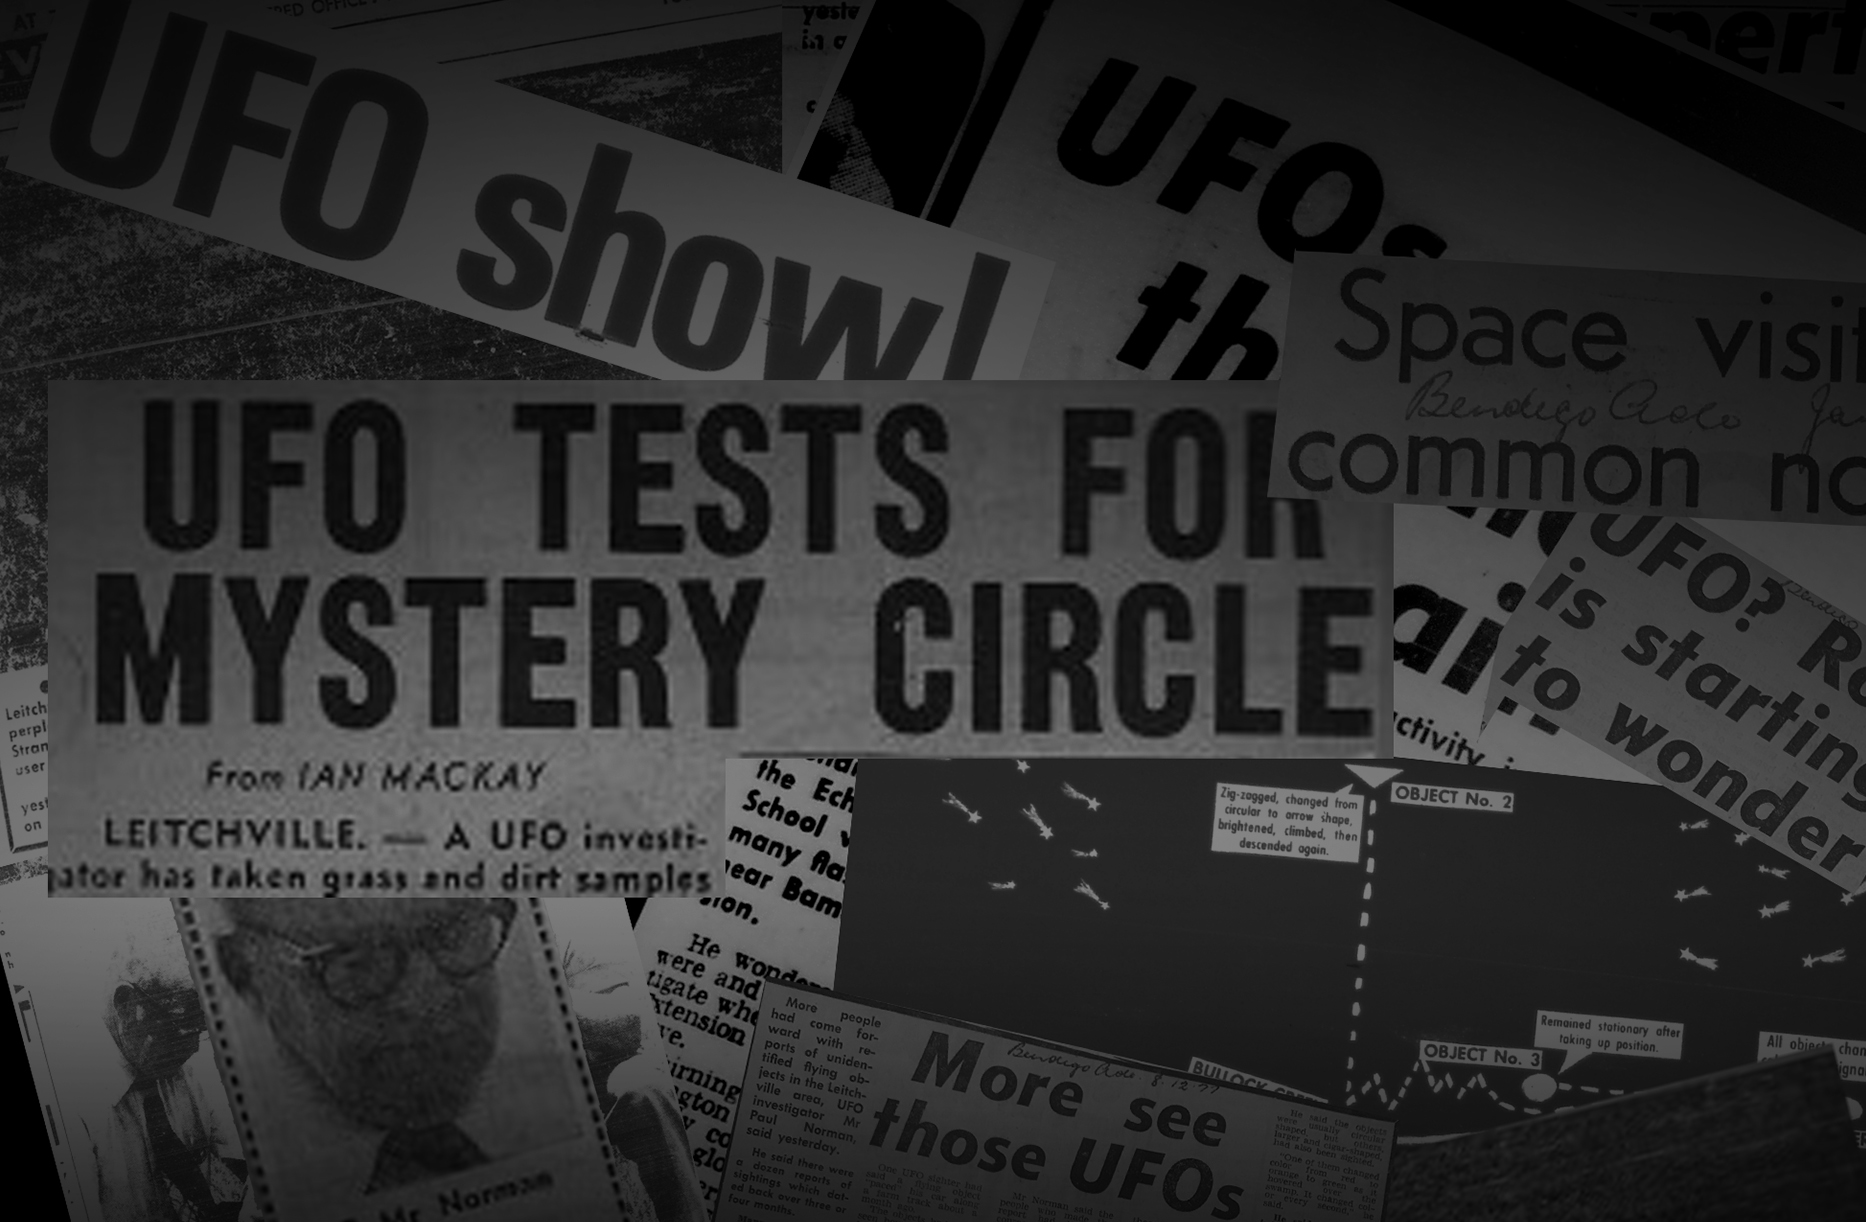 The Sightings podcast UFO newspaper background